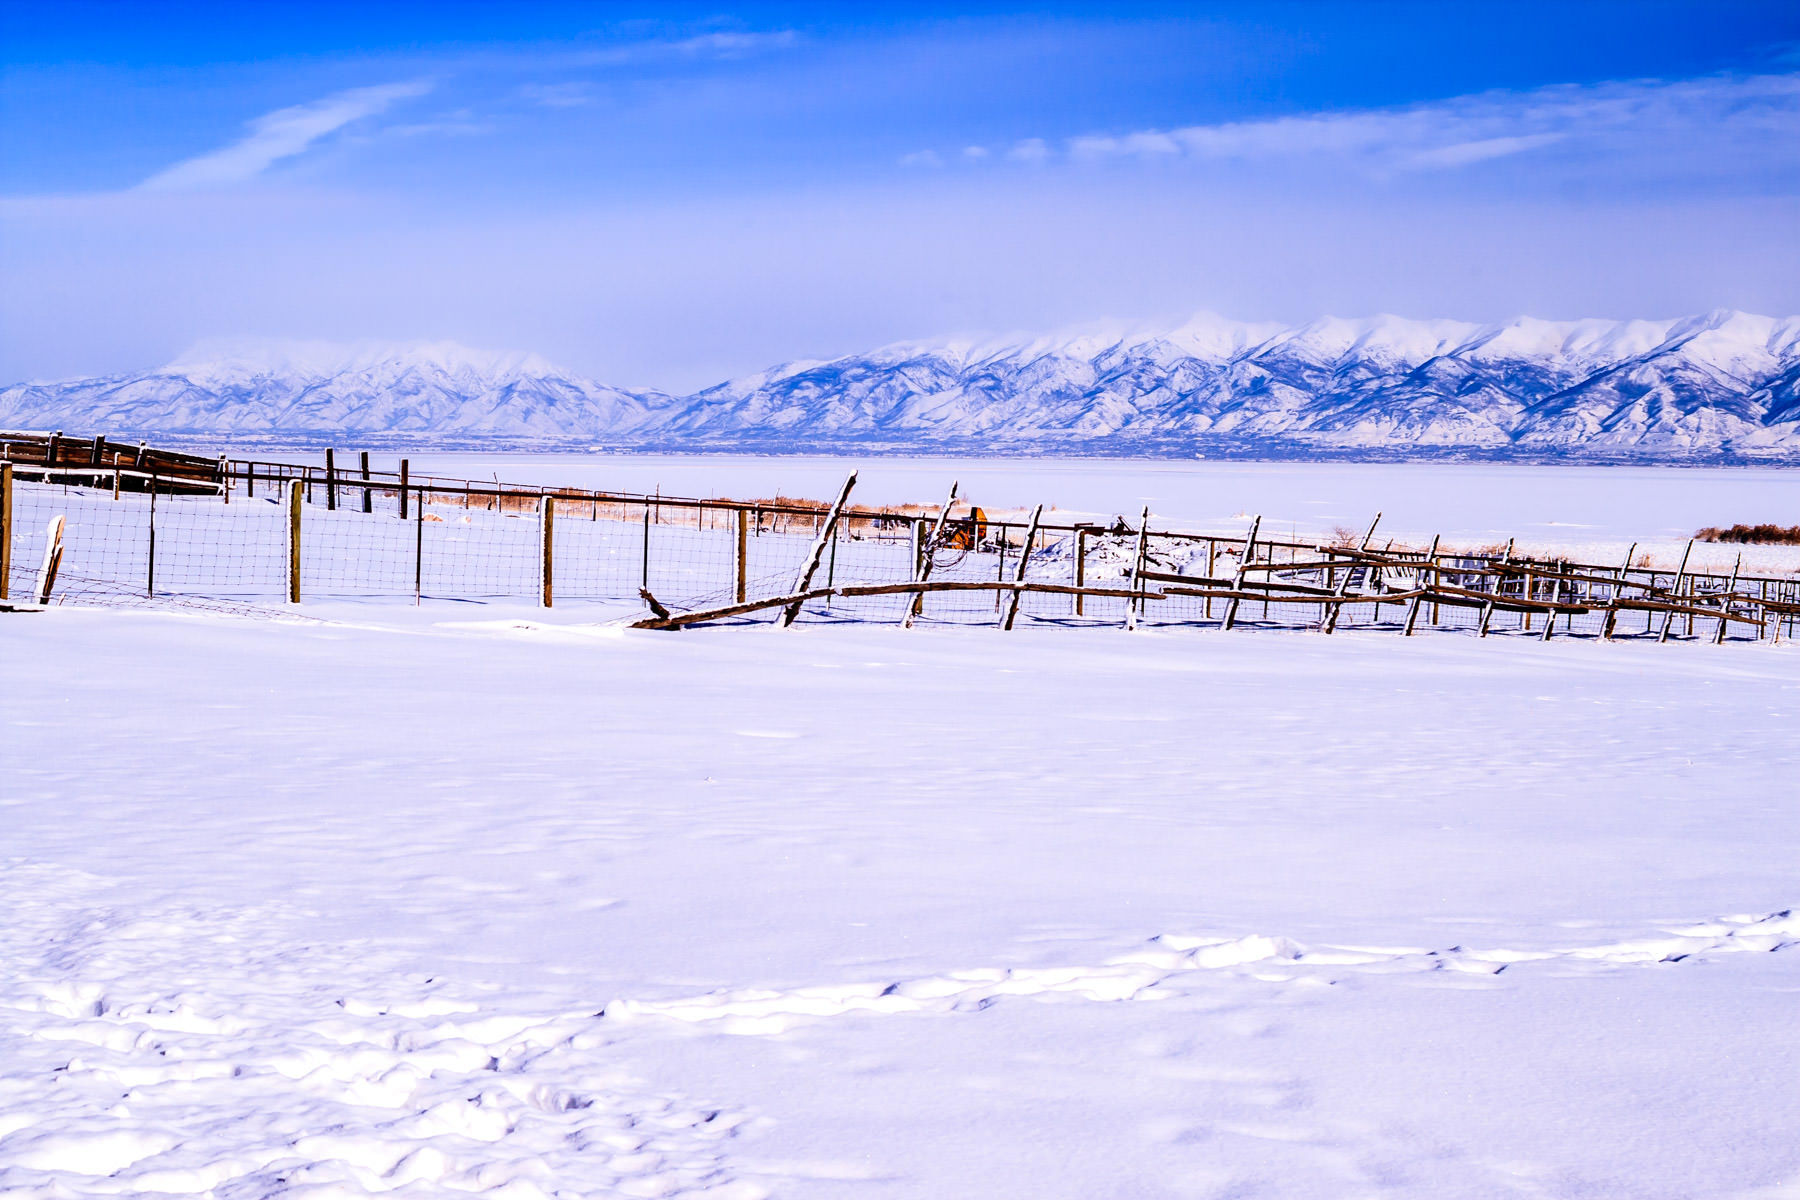 The mountains Utah's Wasatch Front as seen from Antelope Island State Park on a cold winter day.